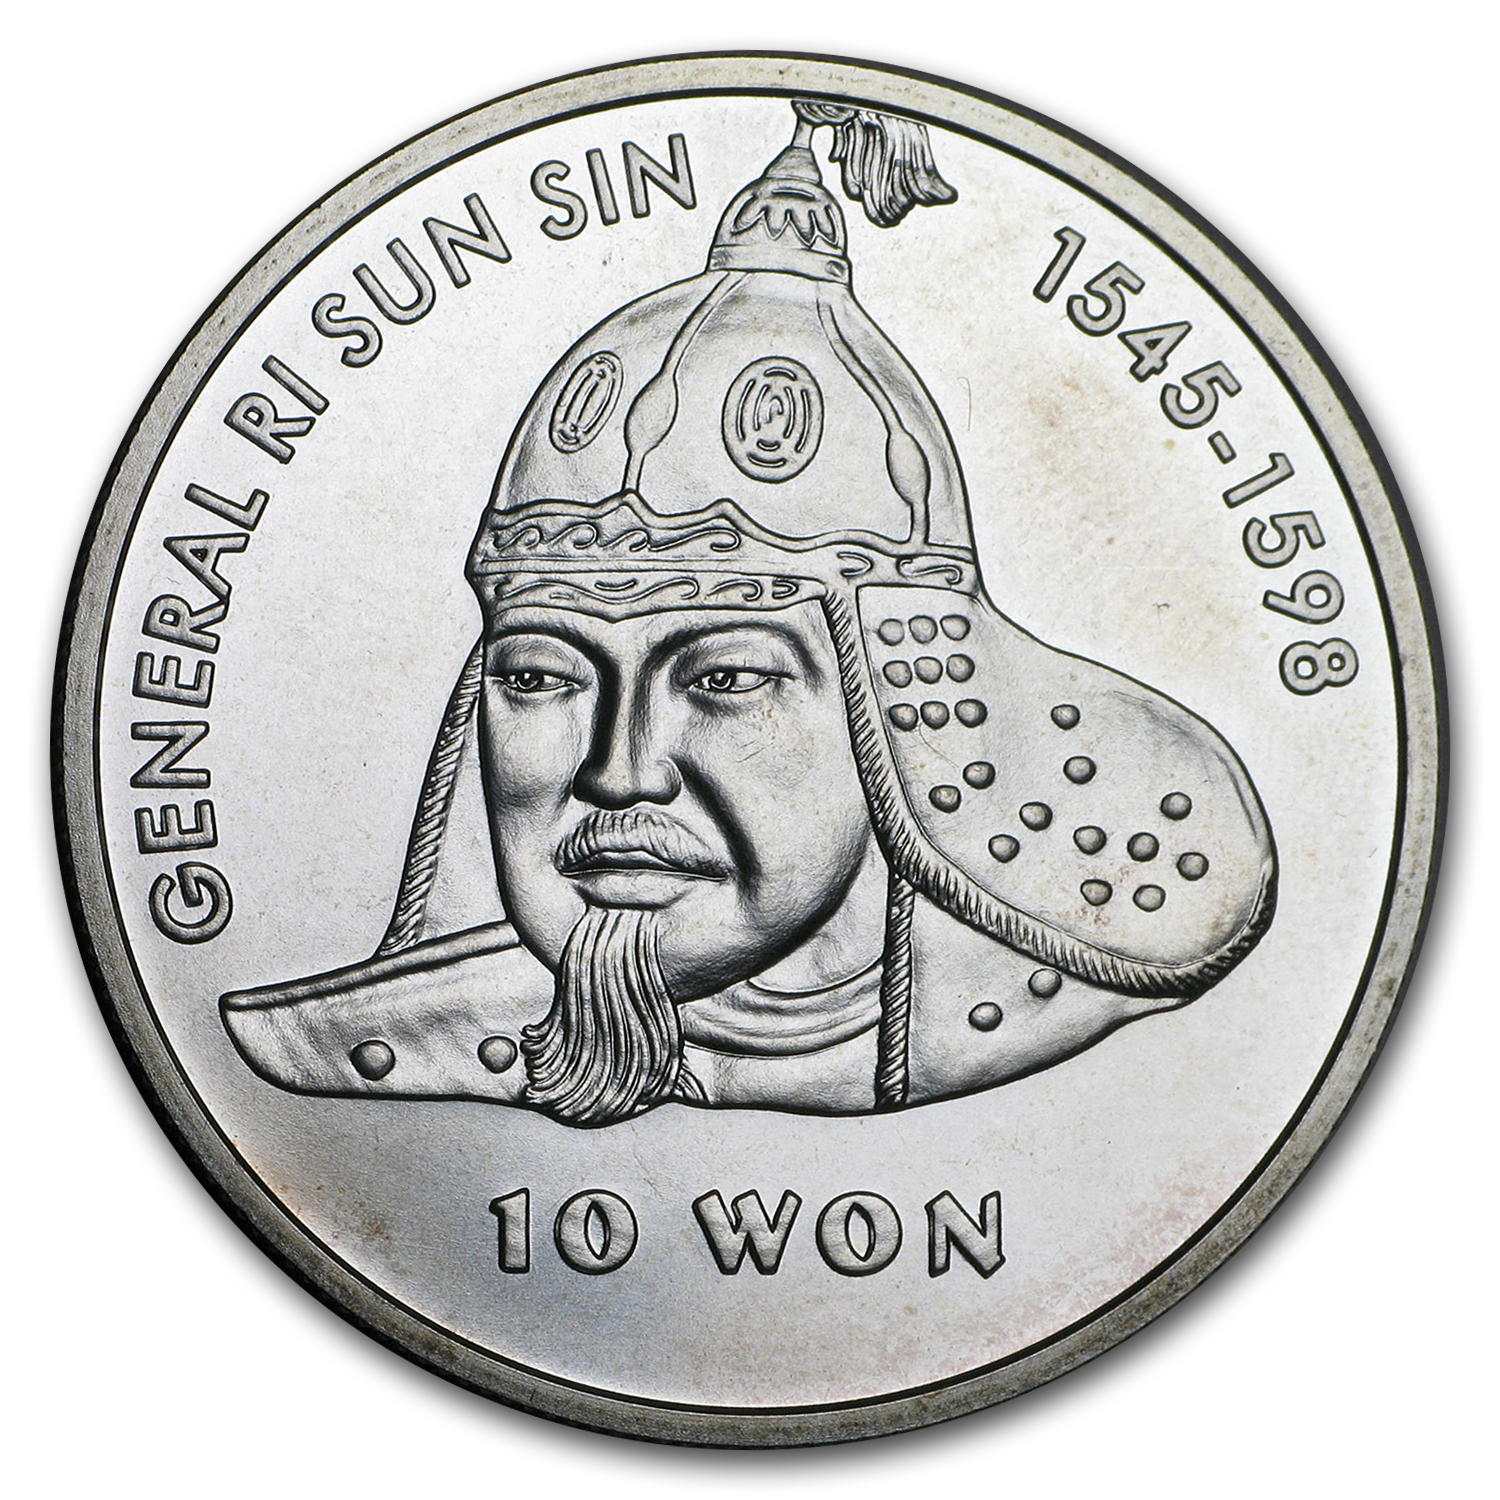 North Korea 2001 10 Won BU Silver Coin ASW .9237